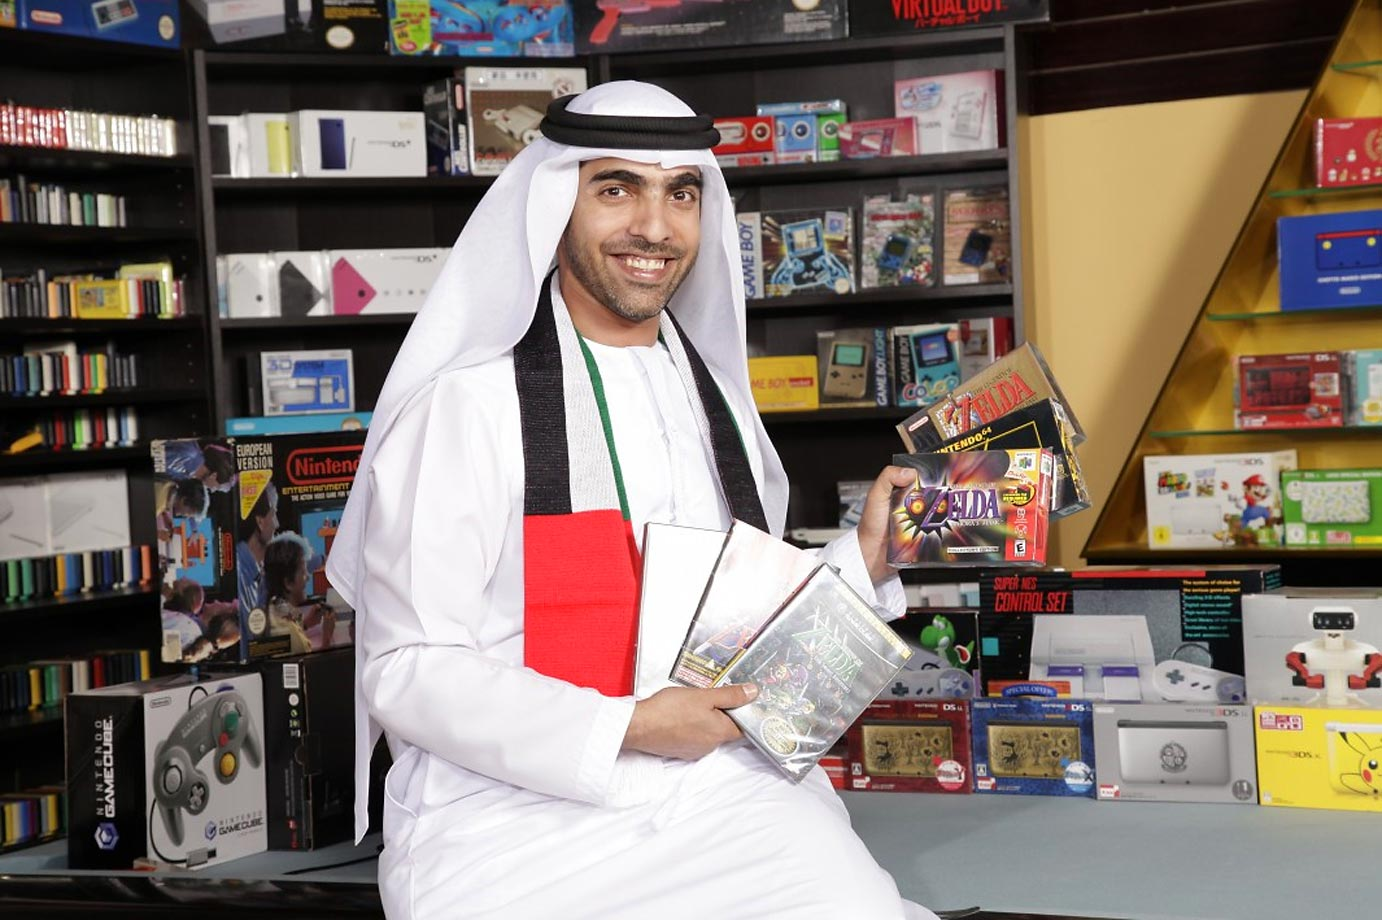 The largest collection of Nintendo Entertainment System paraphernalia belongs to Ahmed Bin Fahad and consists of 2,020 items.